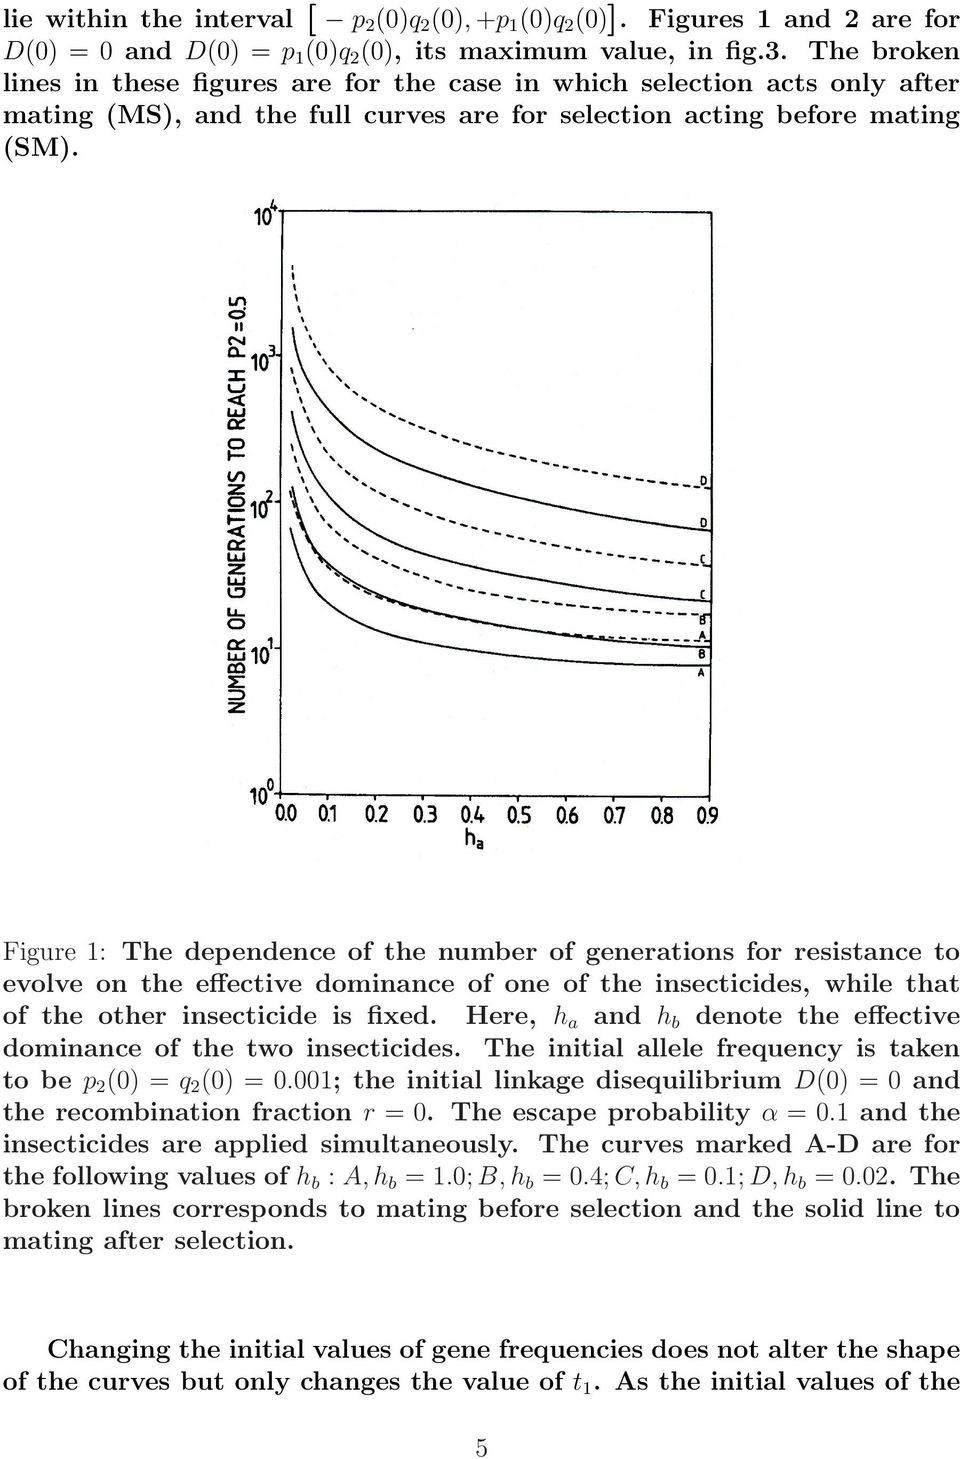 Figure 1: The dependence of the number of generations for resistance to evolve on the effective dominance of one of the insecticides, while that of the other insecticide is fixed.